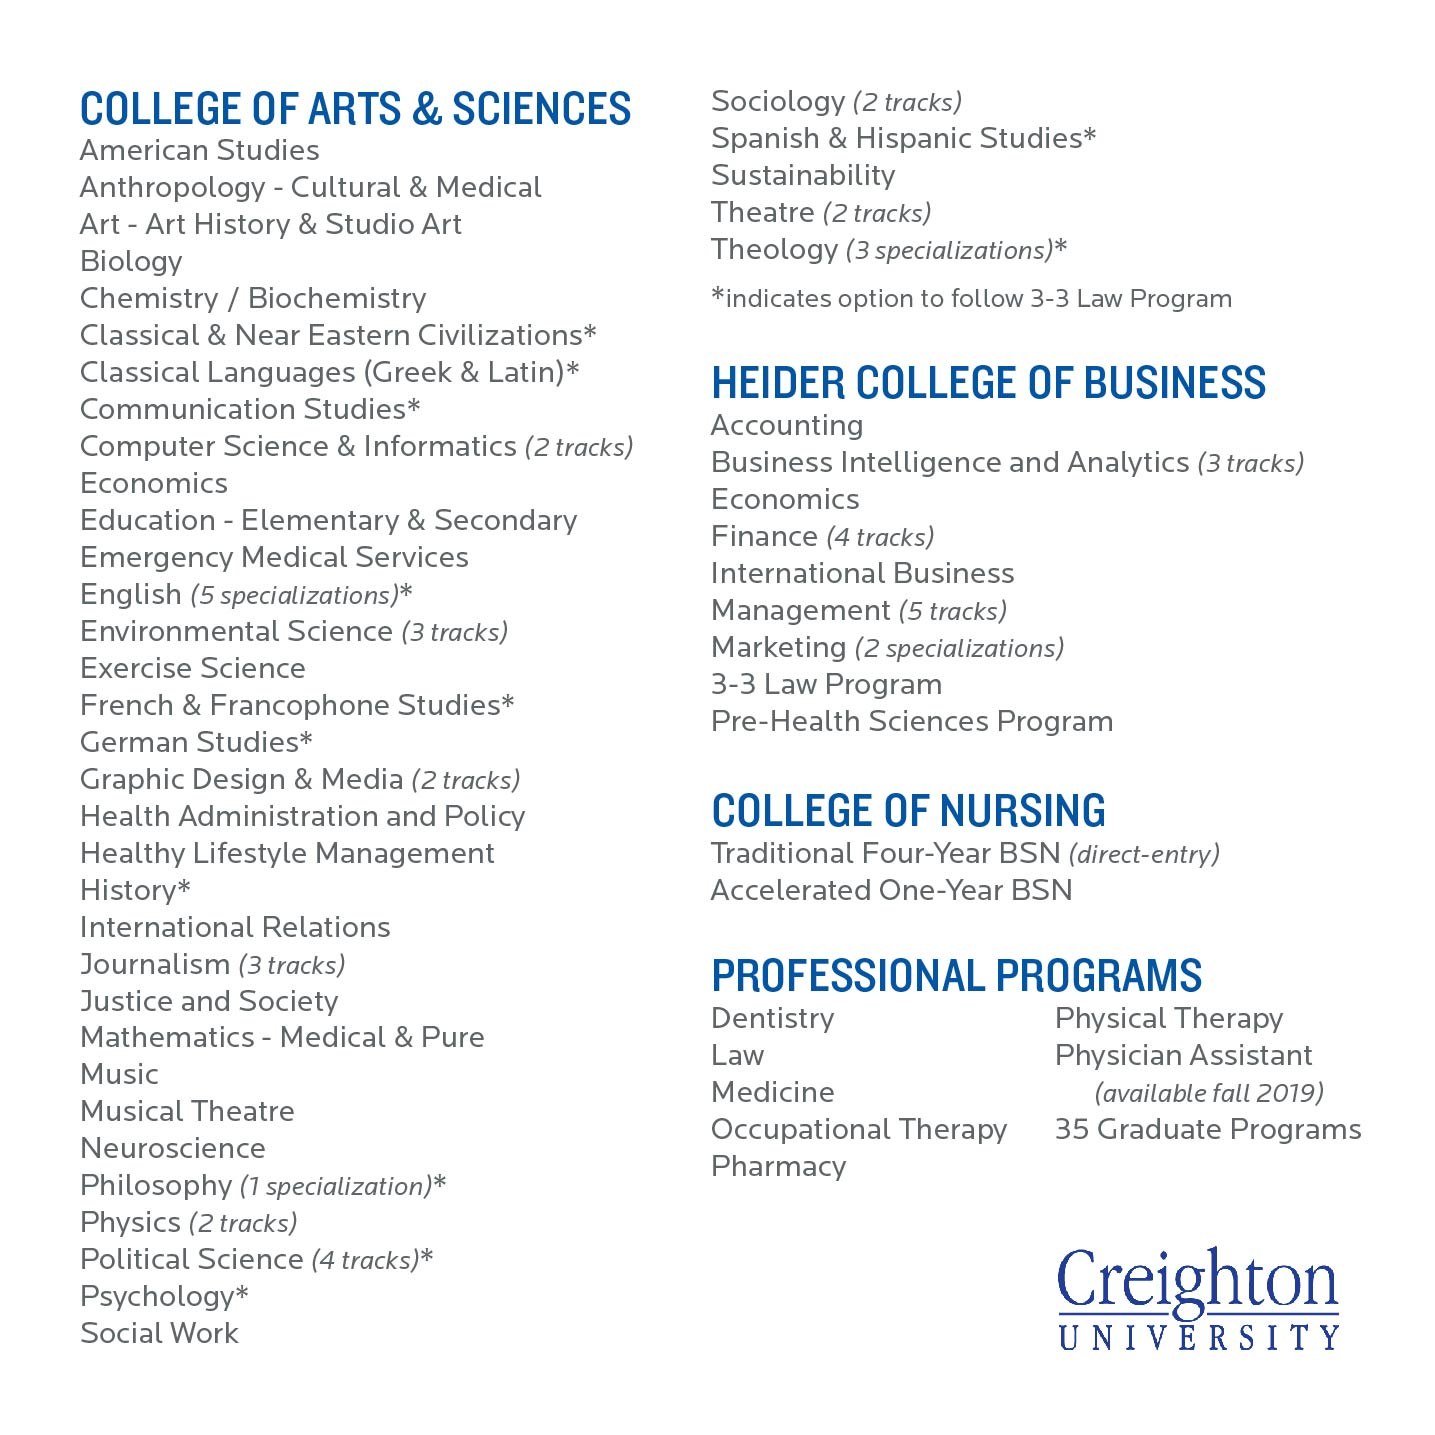 list of academic majors